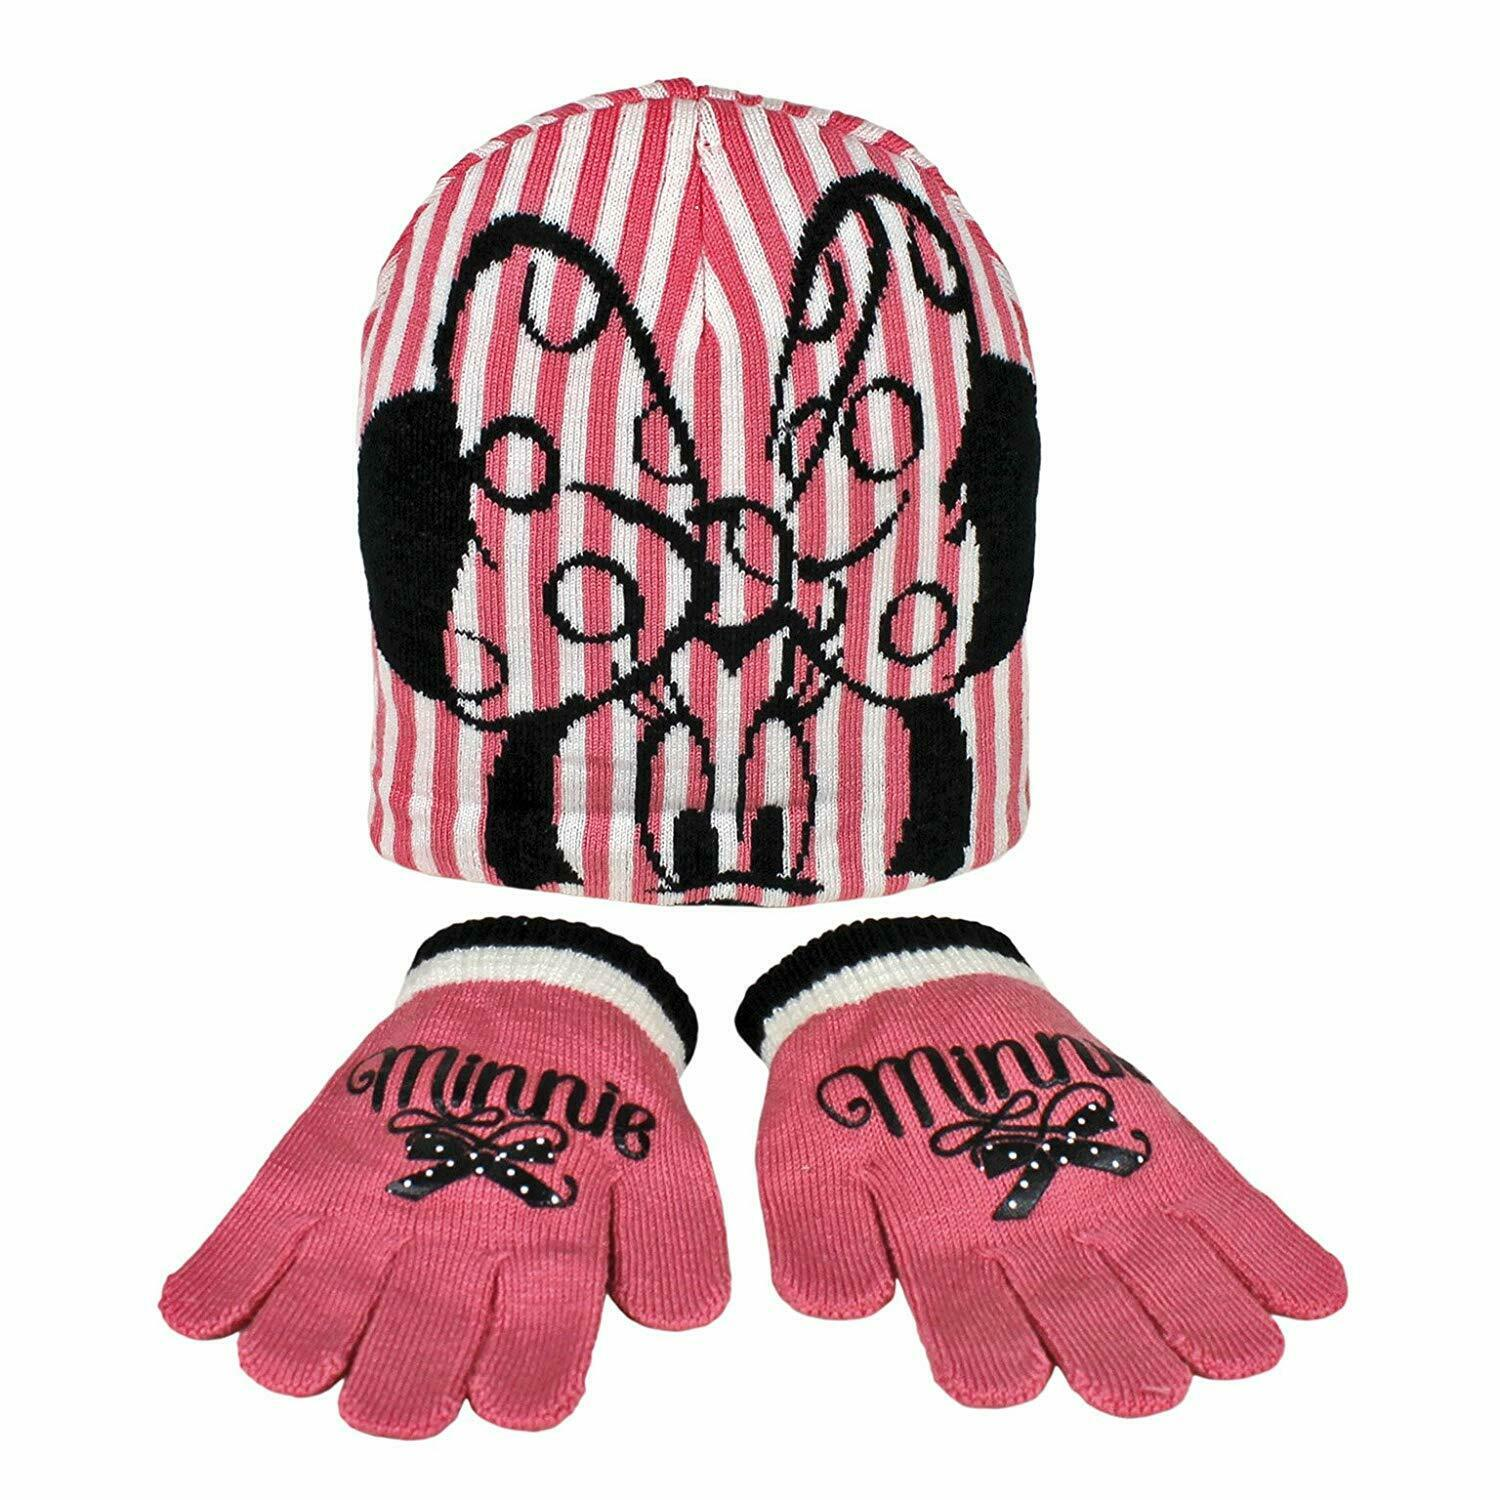 Disney Minnie Mouse Child/Girls Winter 2 Piece Pink & White Hat And Gloves Set - One size by  The Celebrity Gift Company